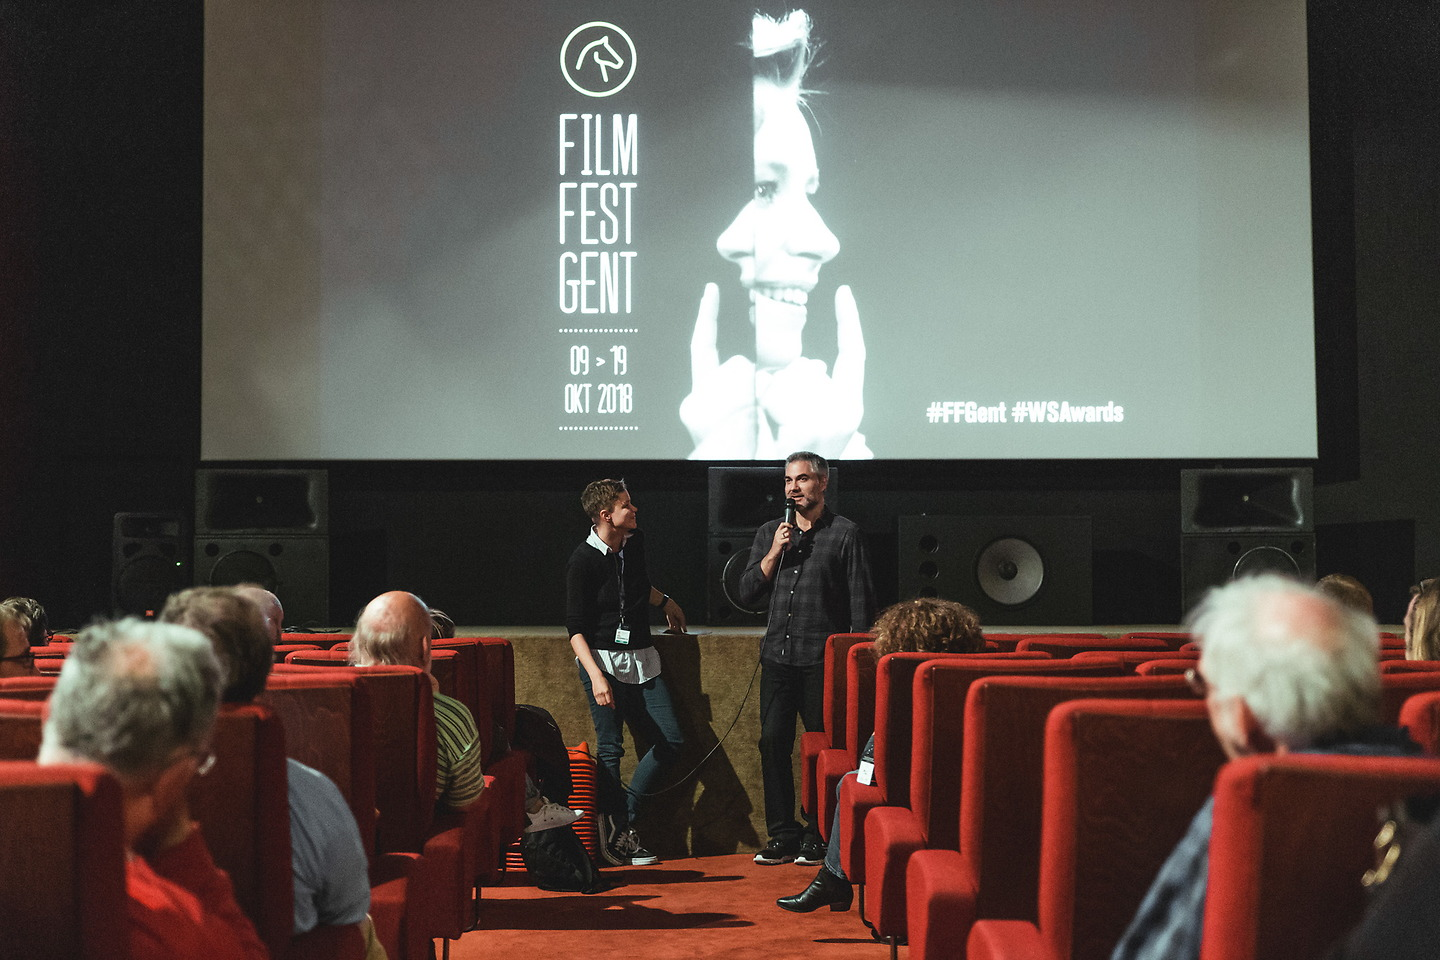 Film Fest Gent - Eternal Winter